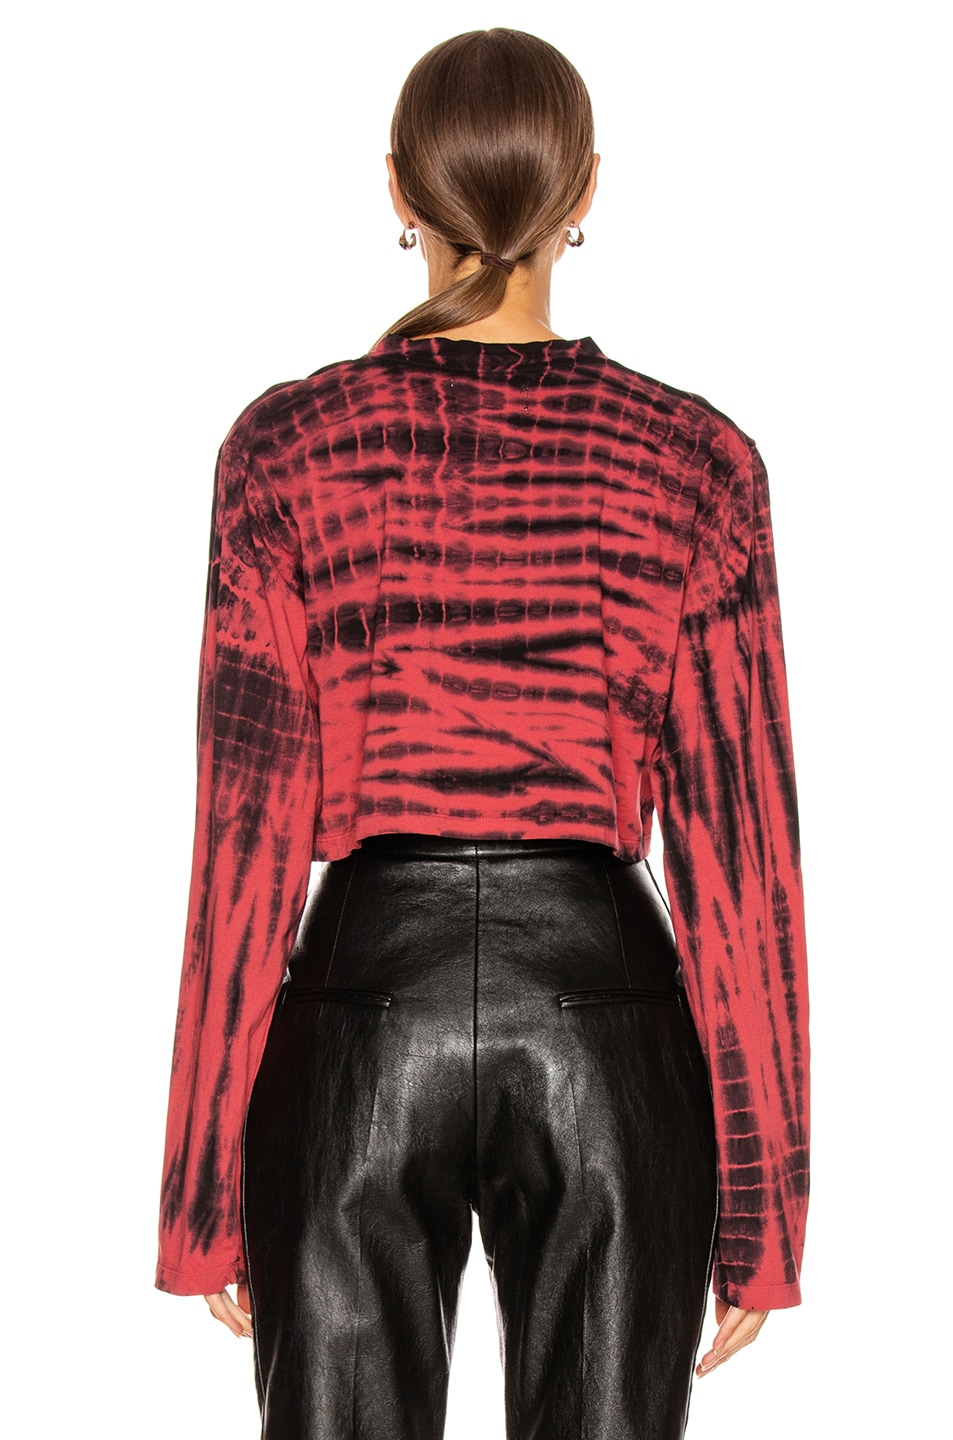 Image 3 of Frankie B Jenny Cropped Long Sleeve Tee in Red & Black Tie Dye